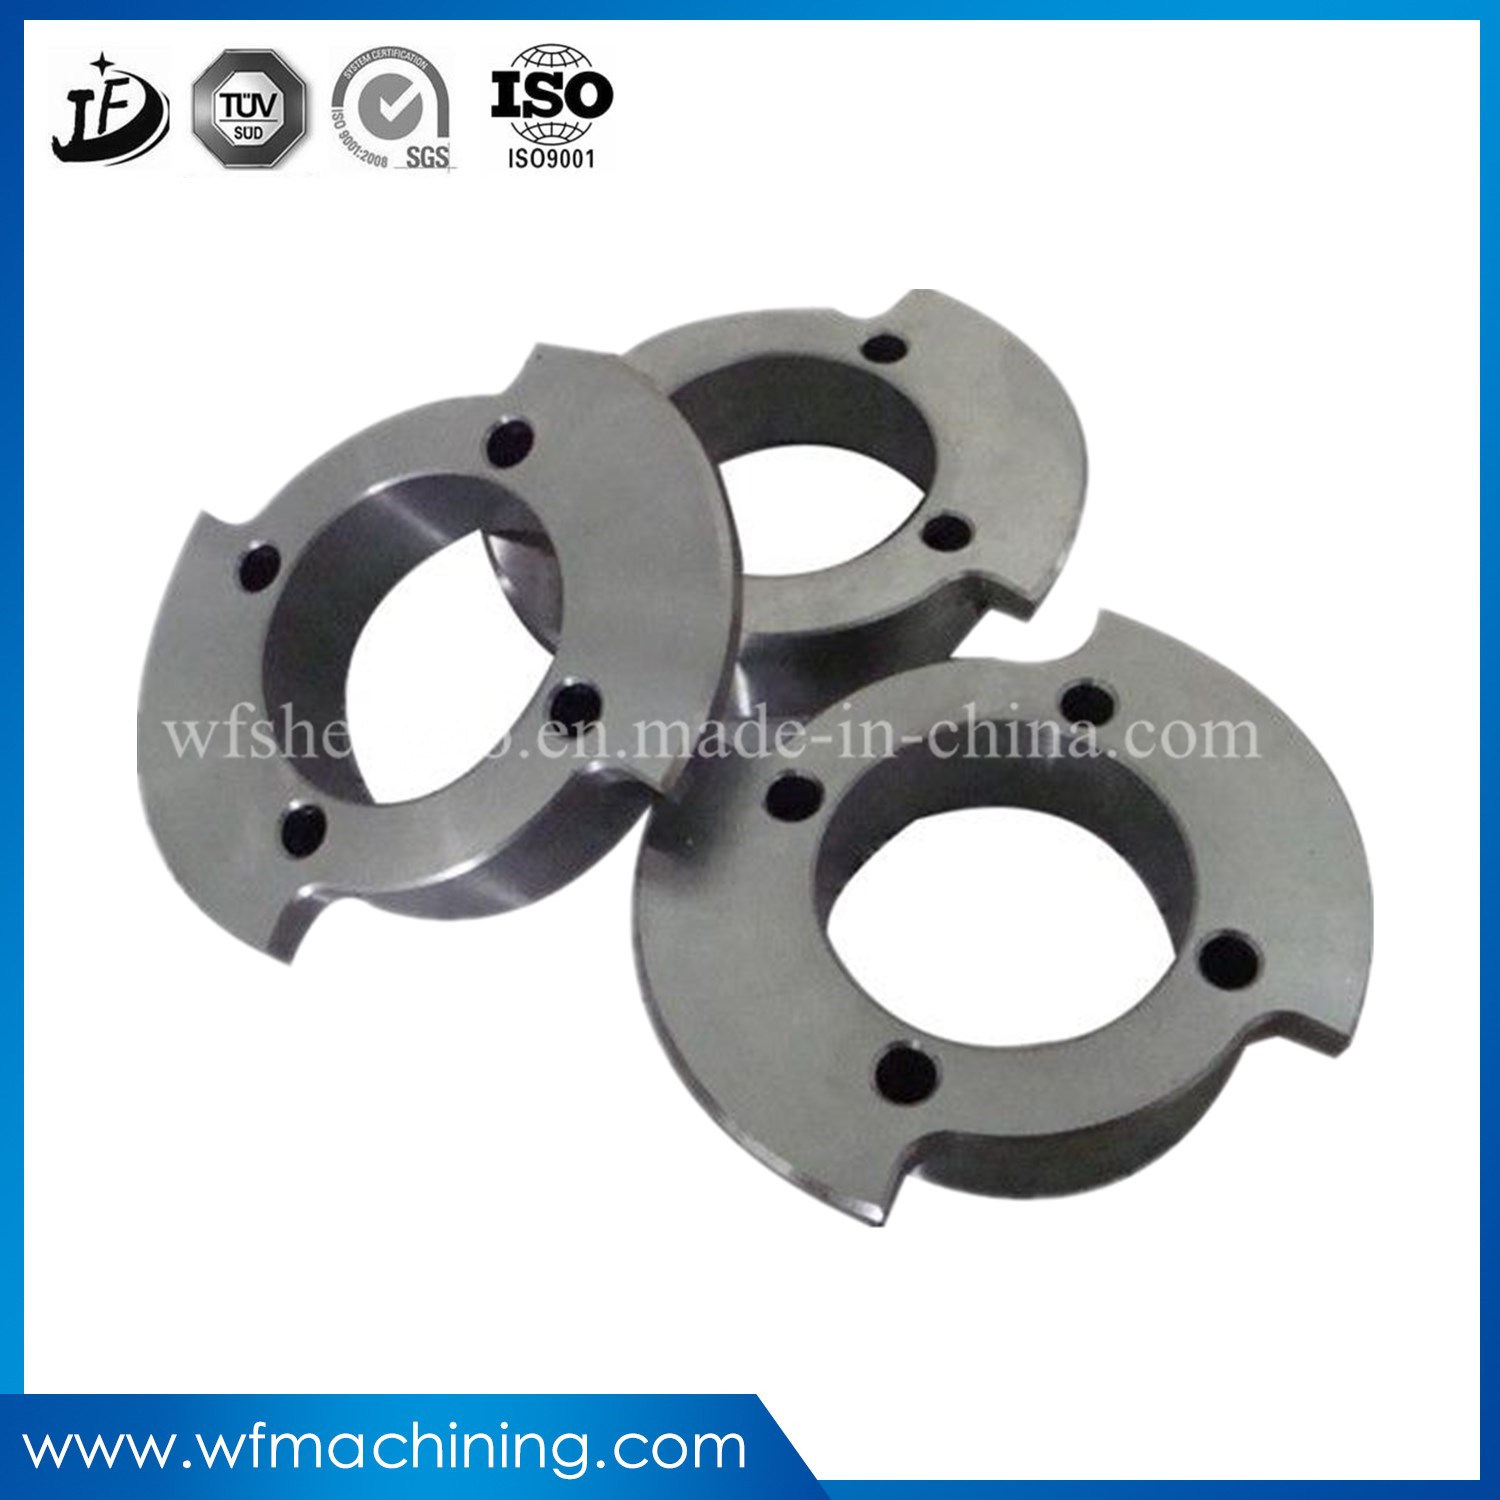 Customized Good Quality Seat Ring CNC Machining and Turning, Milling, Grinding, Drilling Services pictures & photos